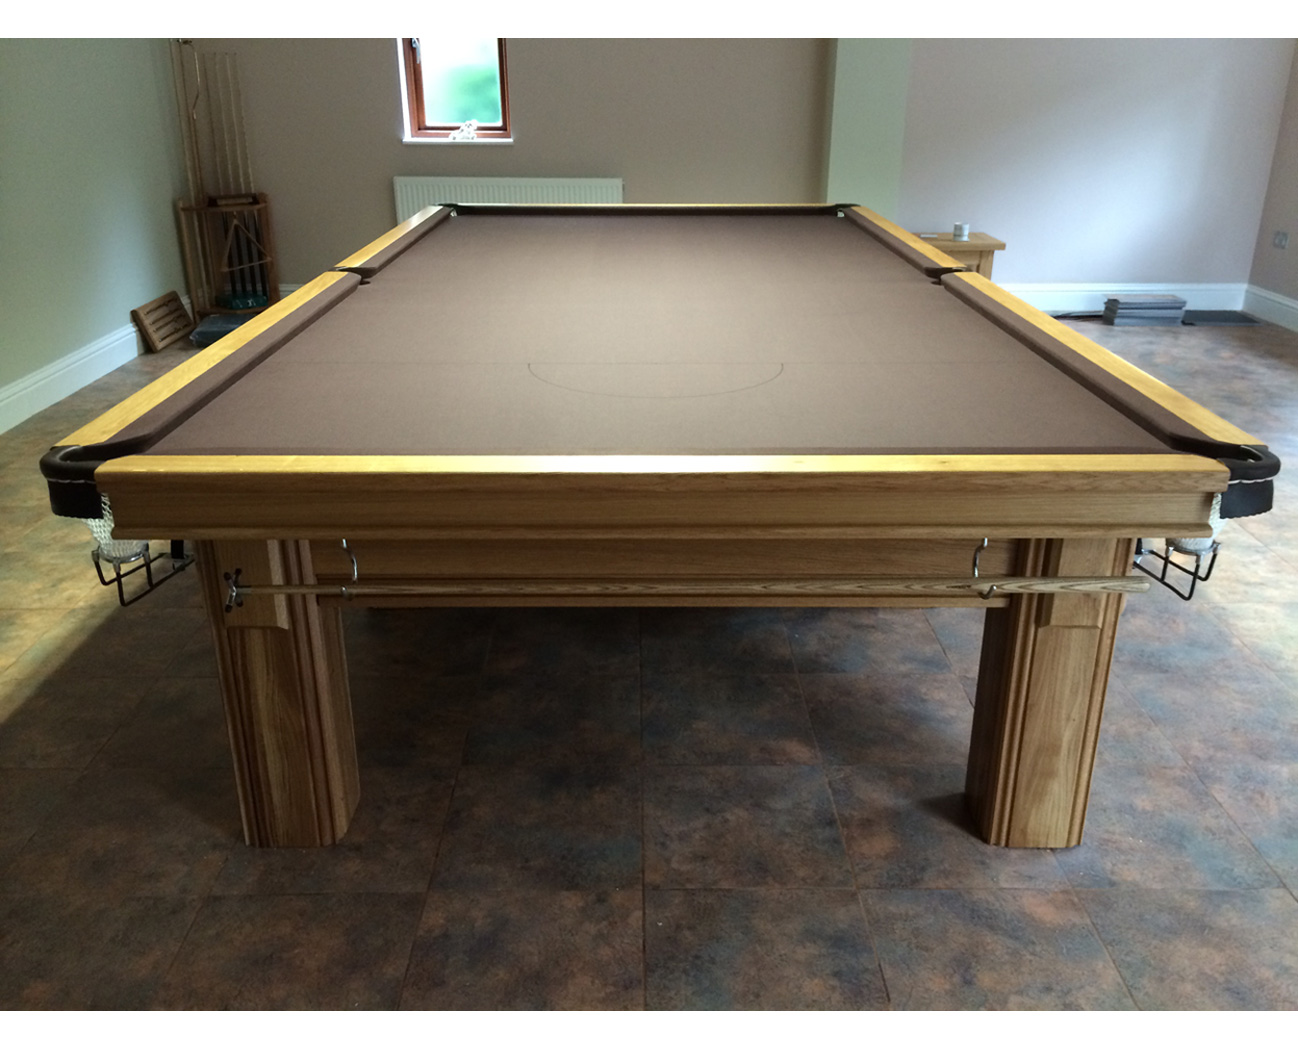 Connoisseur 12 x 6 Snooker Table Oak with Square Legs : 2351 from www.snookerandpooltablecompany.com size 1298 x 1049 jpeg 329kB